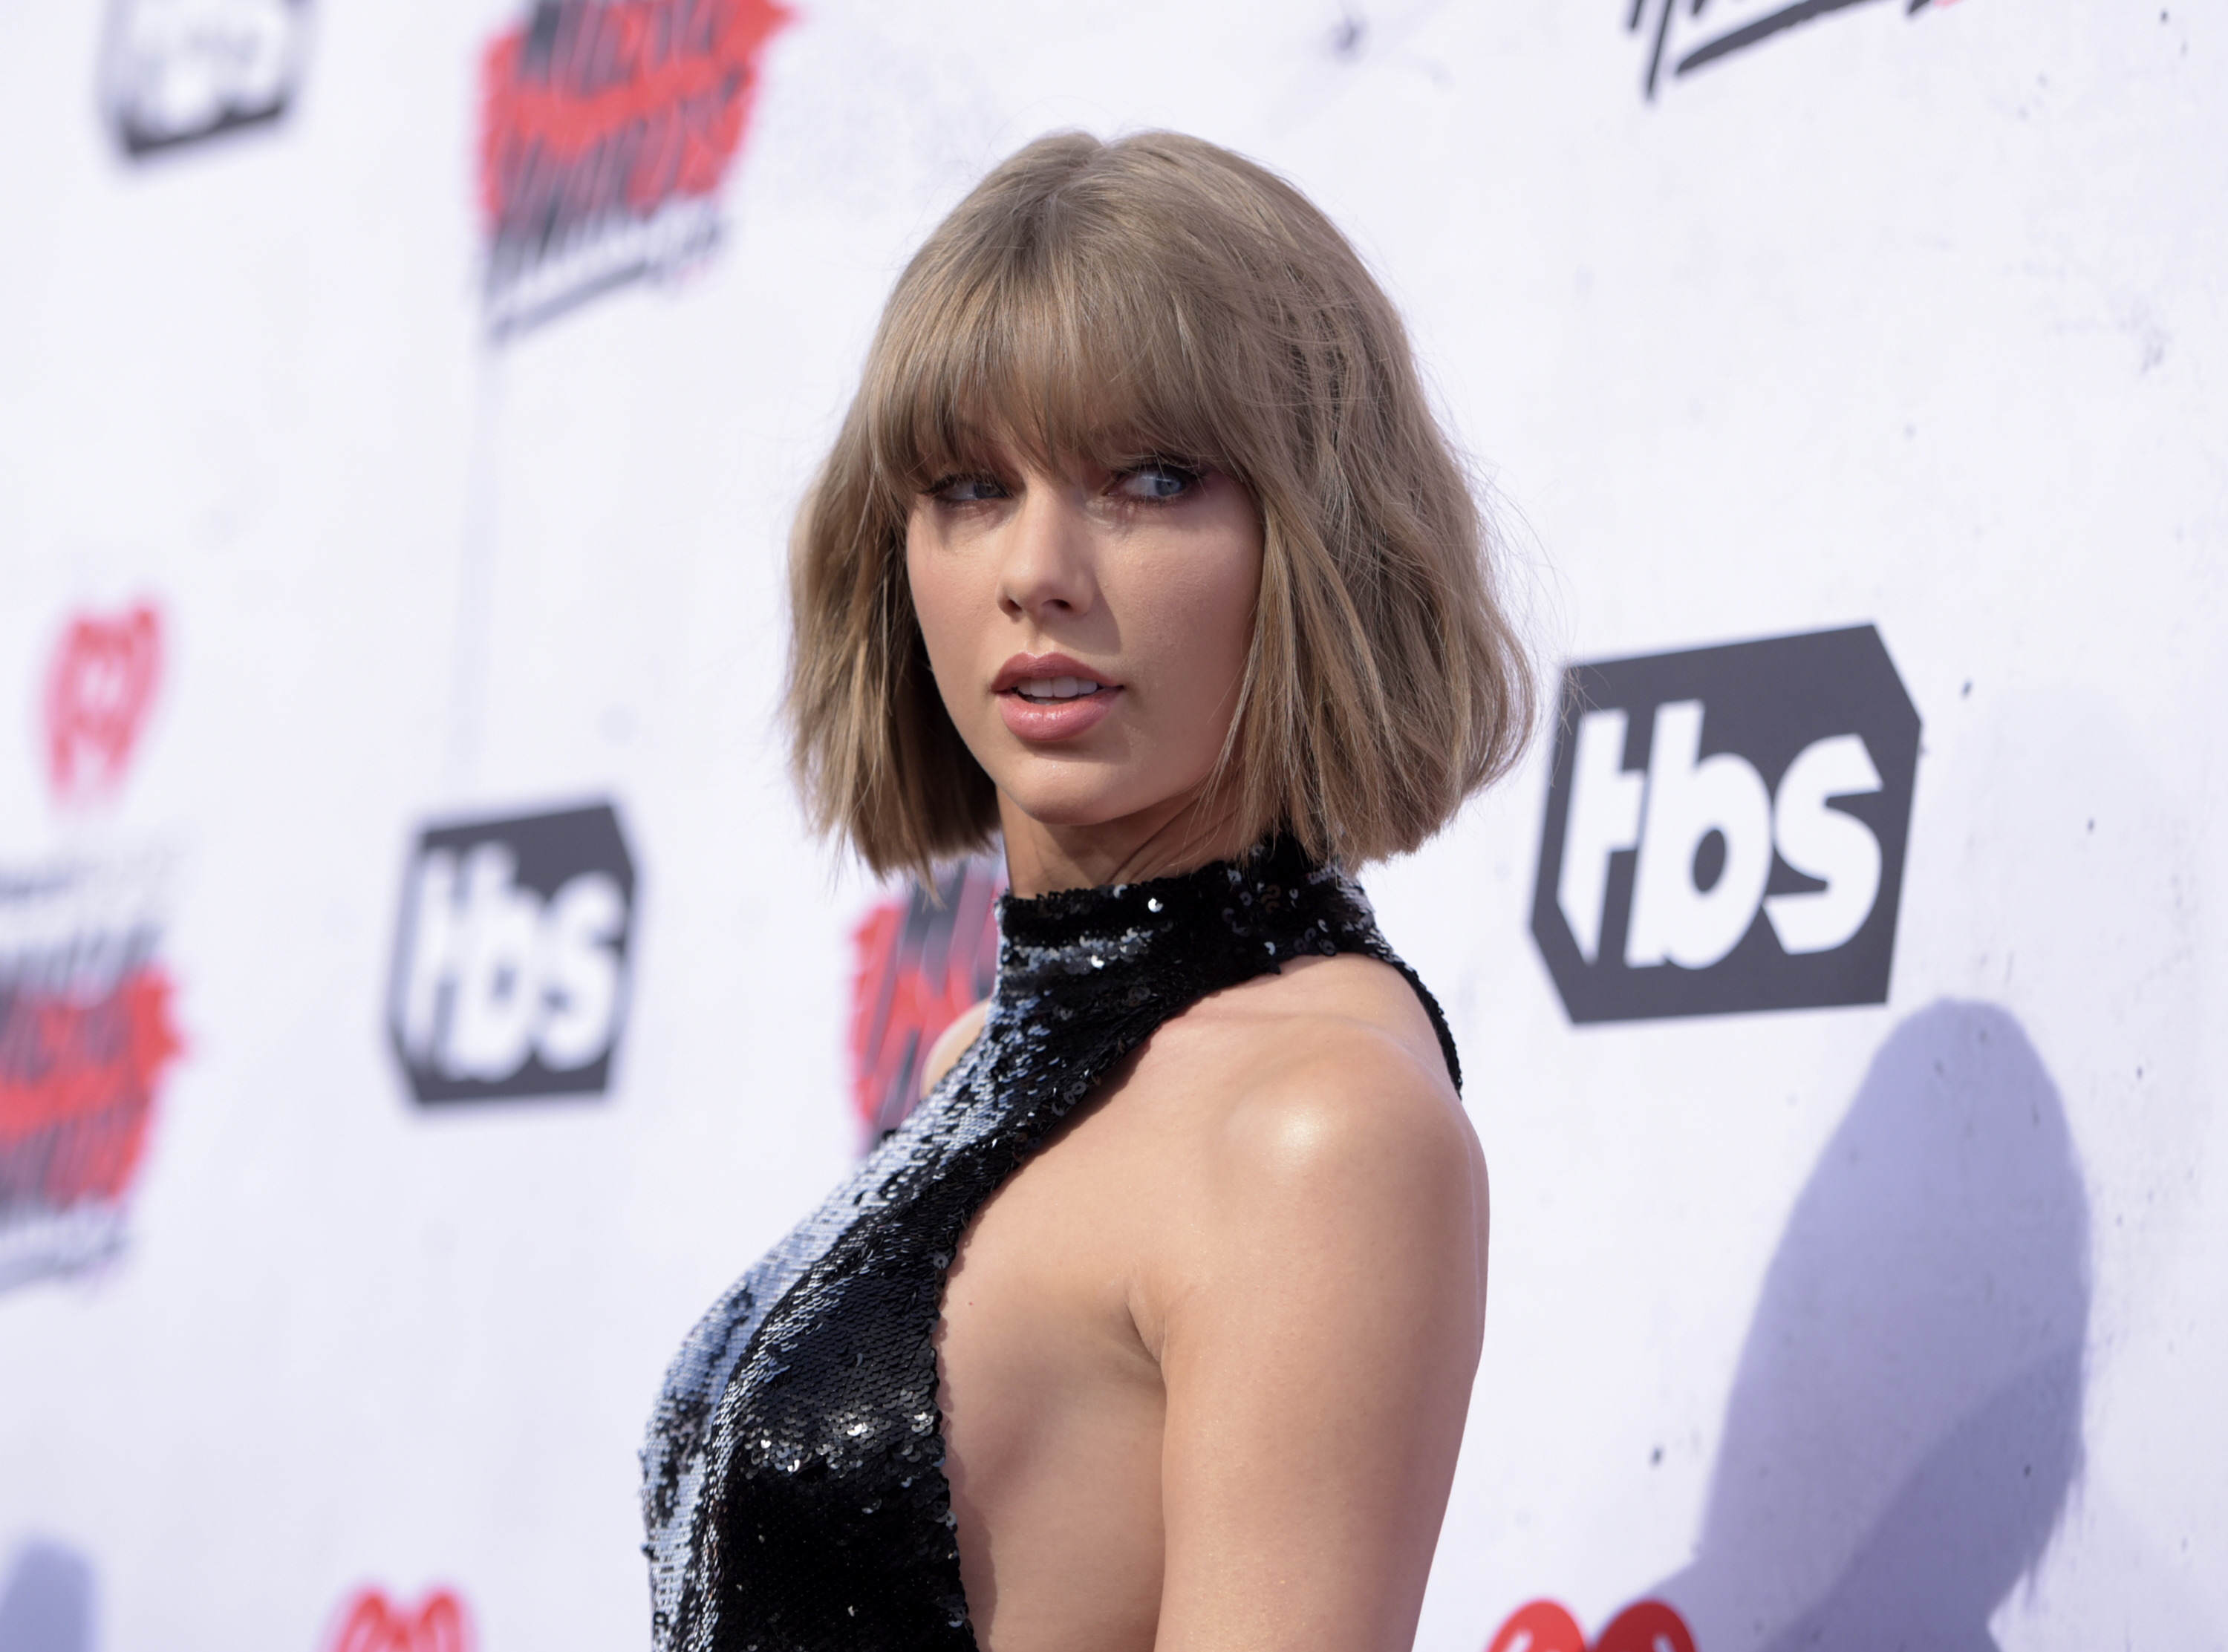 PA 25975933 The Kanye West Taylor Swift Feud Has Just Got A Whole Lot Worse